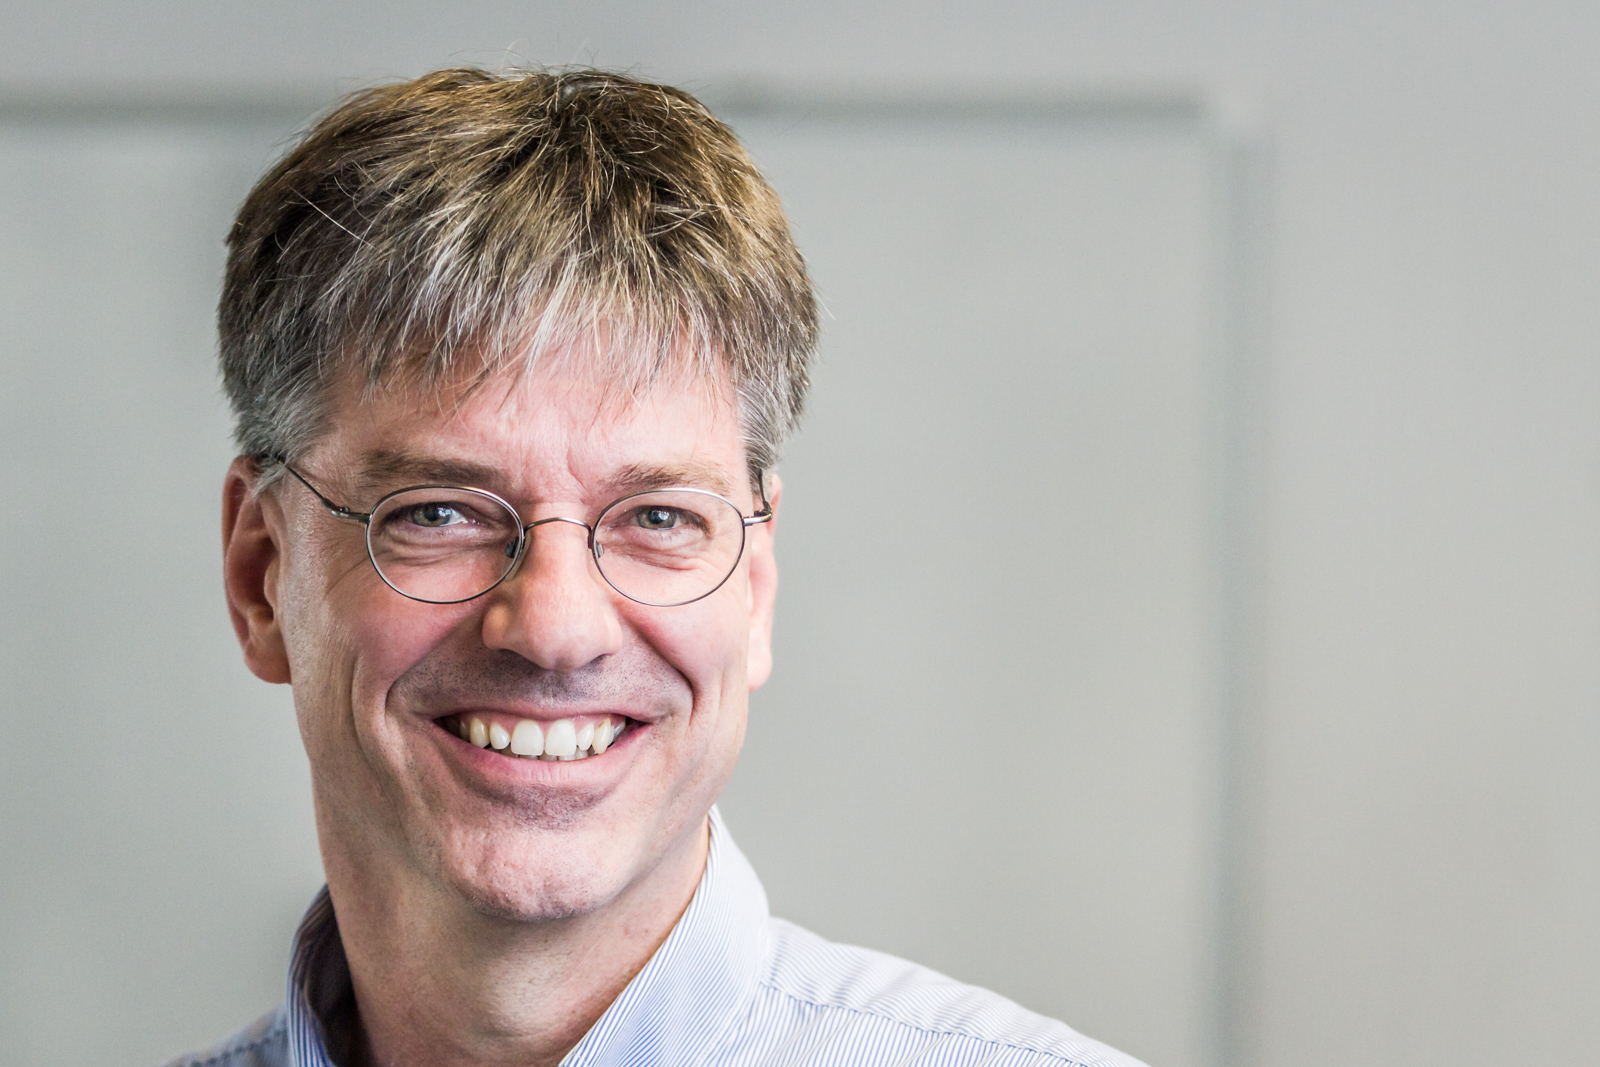 [:de]Roger Müller ist Gründer und CEO mit Herzblut von acc solutions. [:en]Roger Müller is a founder of acc solutions and the CEO.[:]